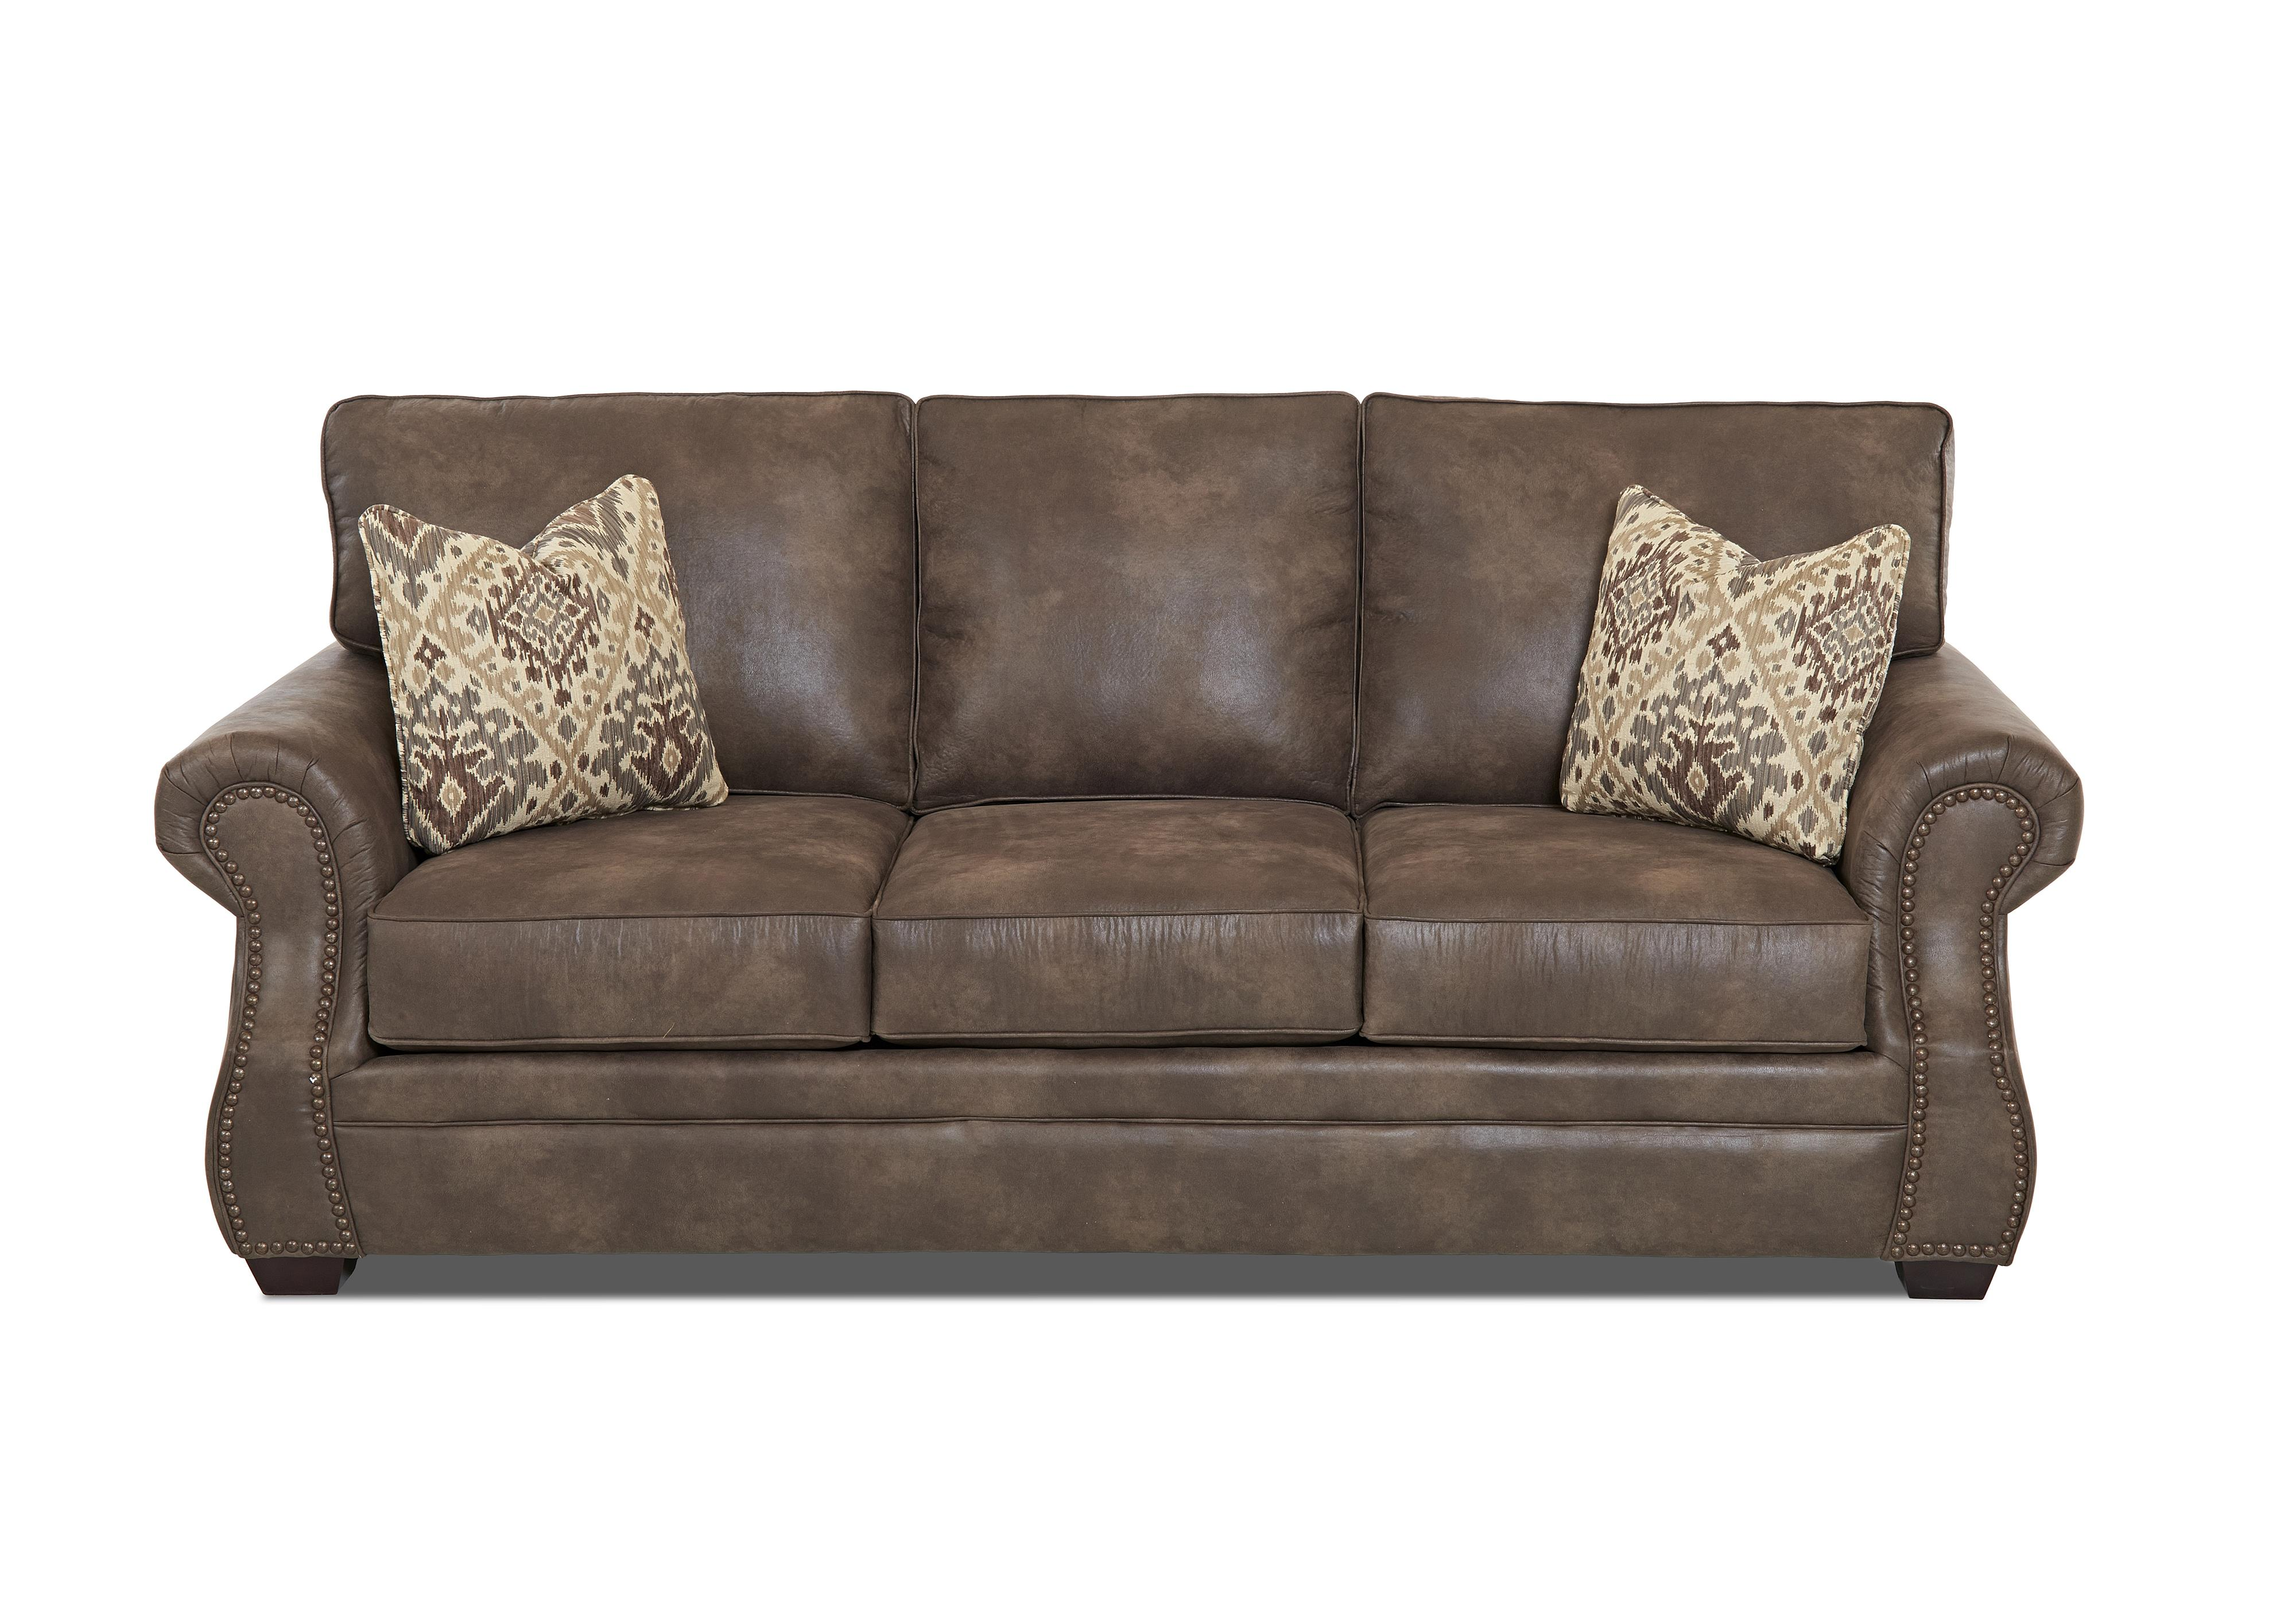 max coil sofa bed quality sofas west midlands klaussner jasper traditional air mattress sleeper